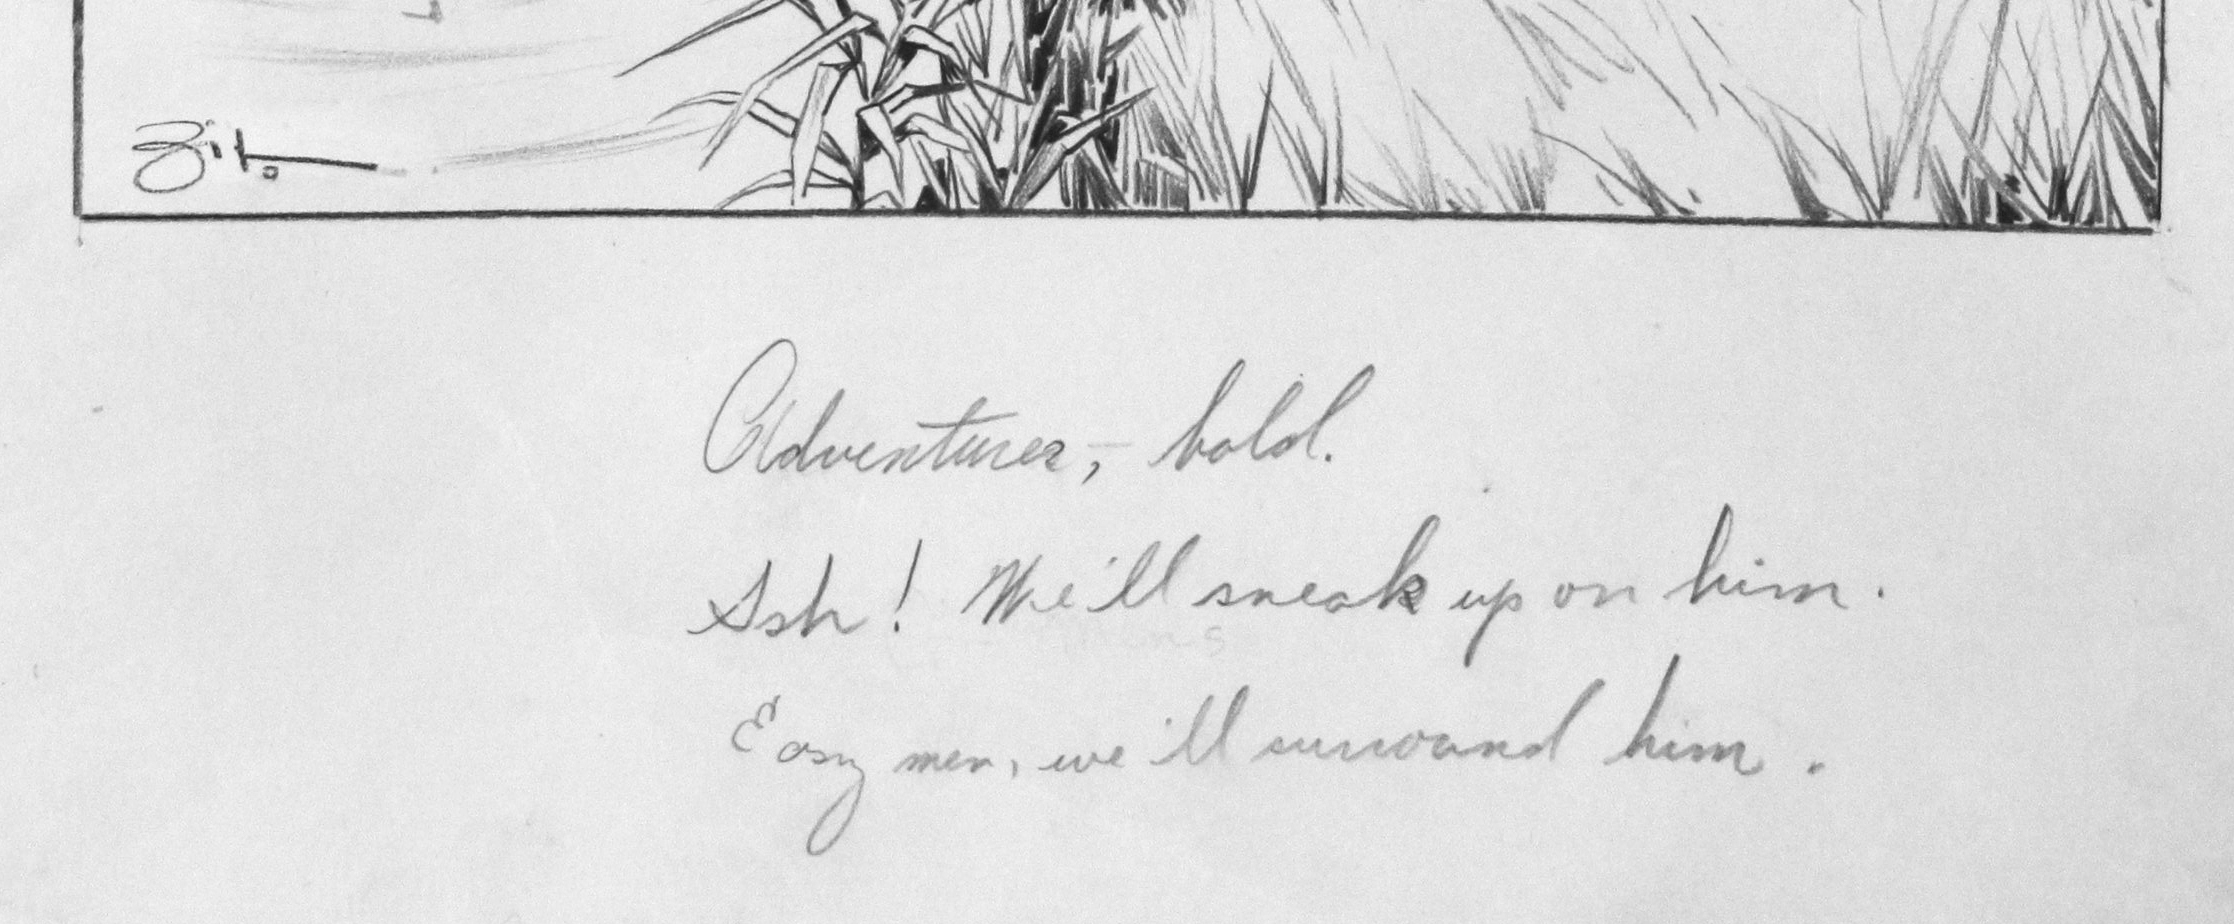 Click to see full size: A circa 1930�s pen and ink humorous canine dog / Gordon Setter / English Setter / Pointer hunting gundog / bird dog cartoon drawing by Vincenzo (Vincent) Maria Zito (European/American 1900-1966)- A circa 1930�s pen and ink humorous canine dog / Gordon Setter / English Setter / Pointer hunting gundog / bird dog cartoon drawing by Vincenzo (Vincent) Maria Zito (European/American 1900-1966)